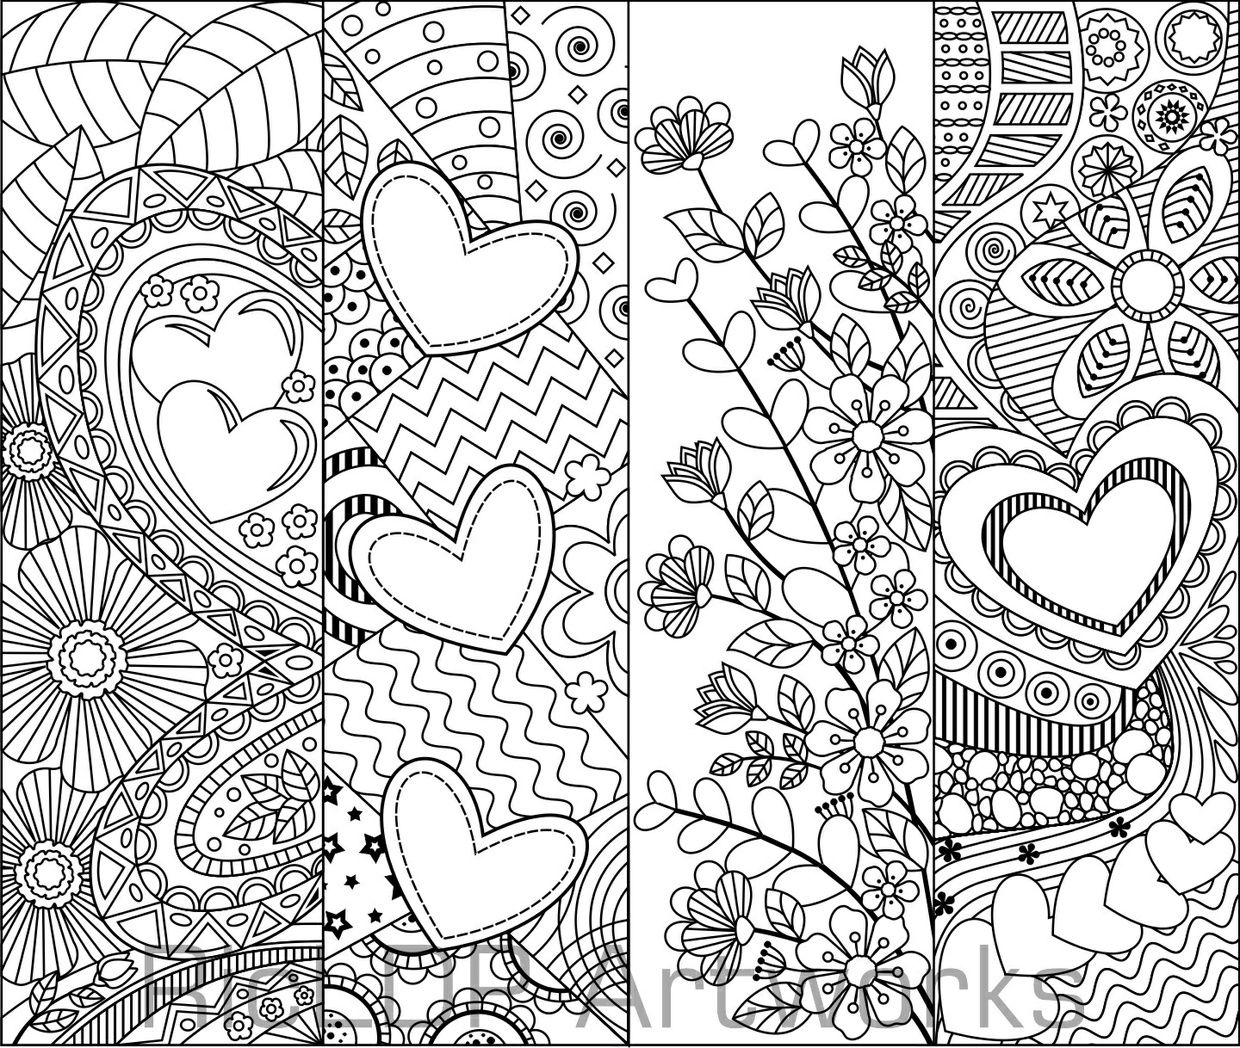 coloring bookmark template set of 8 coloring bookmarks with hearts art doodles for template bookmark coloring